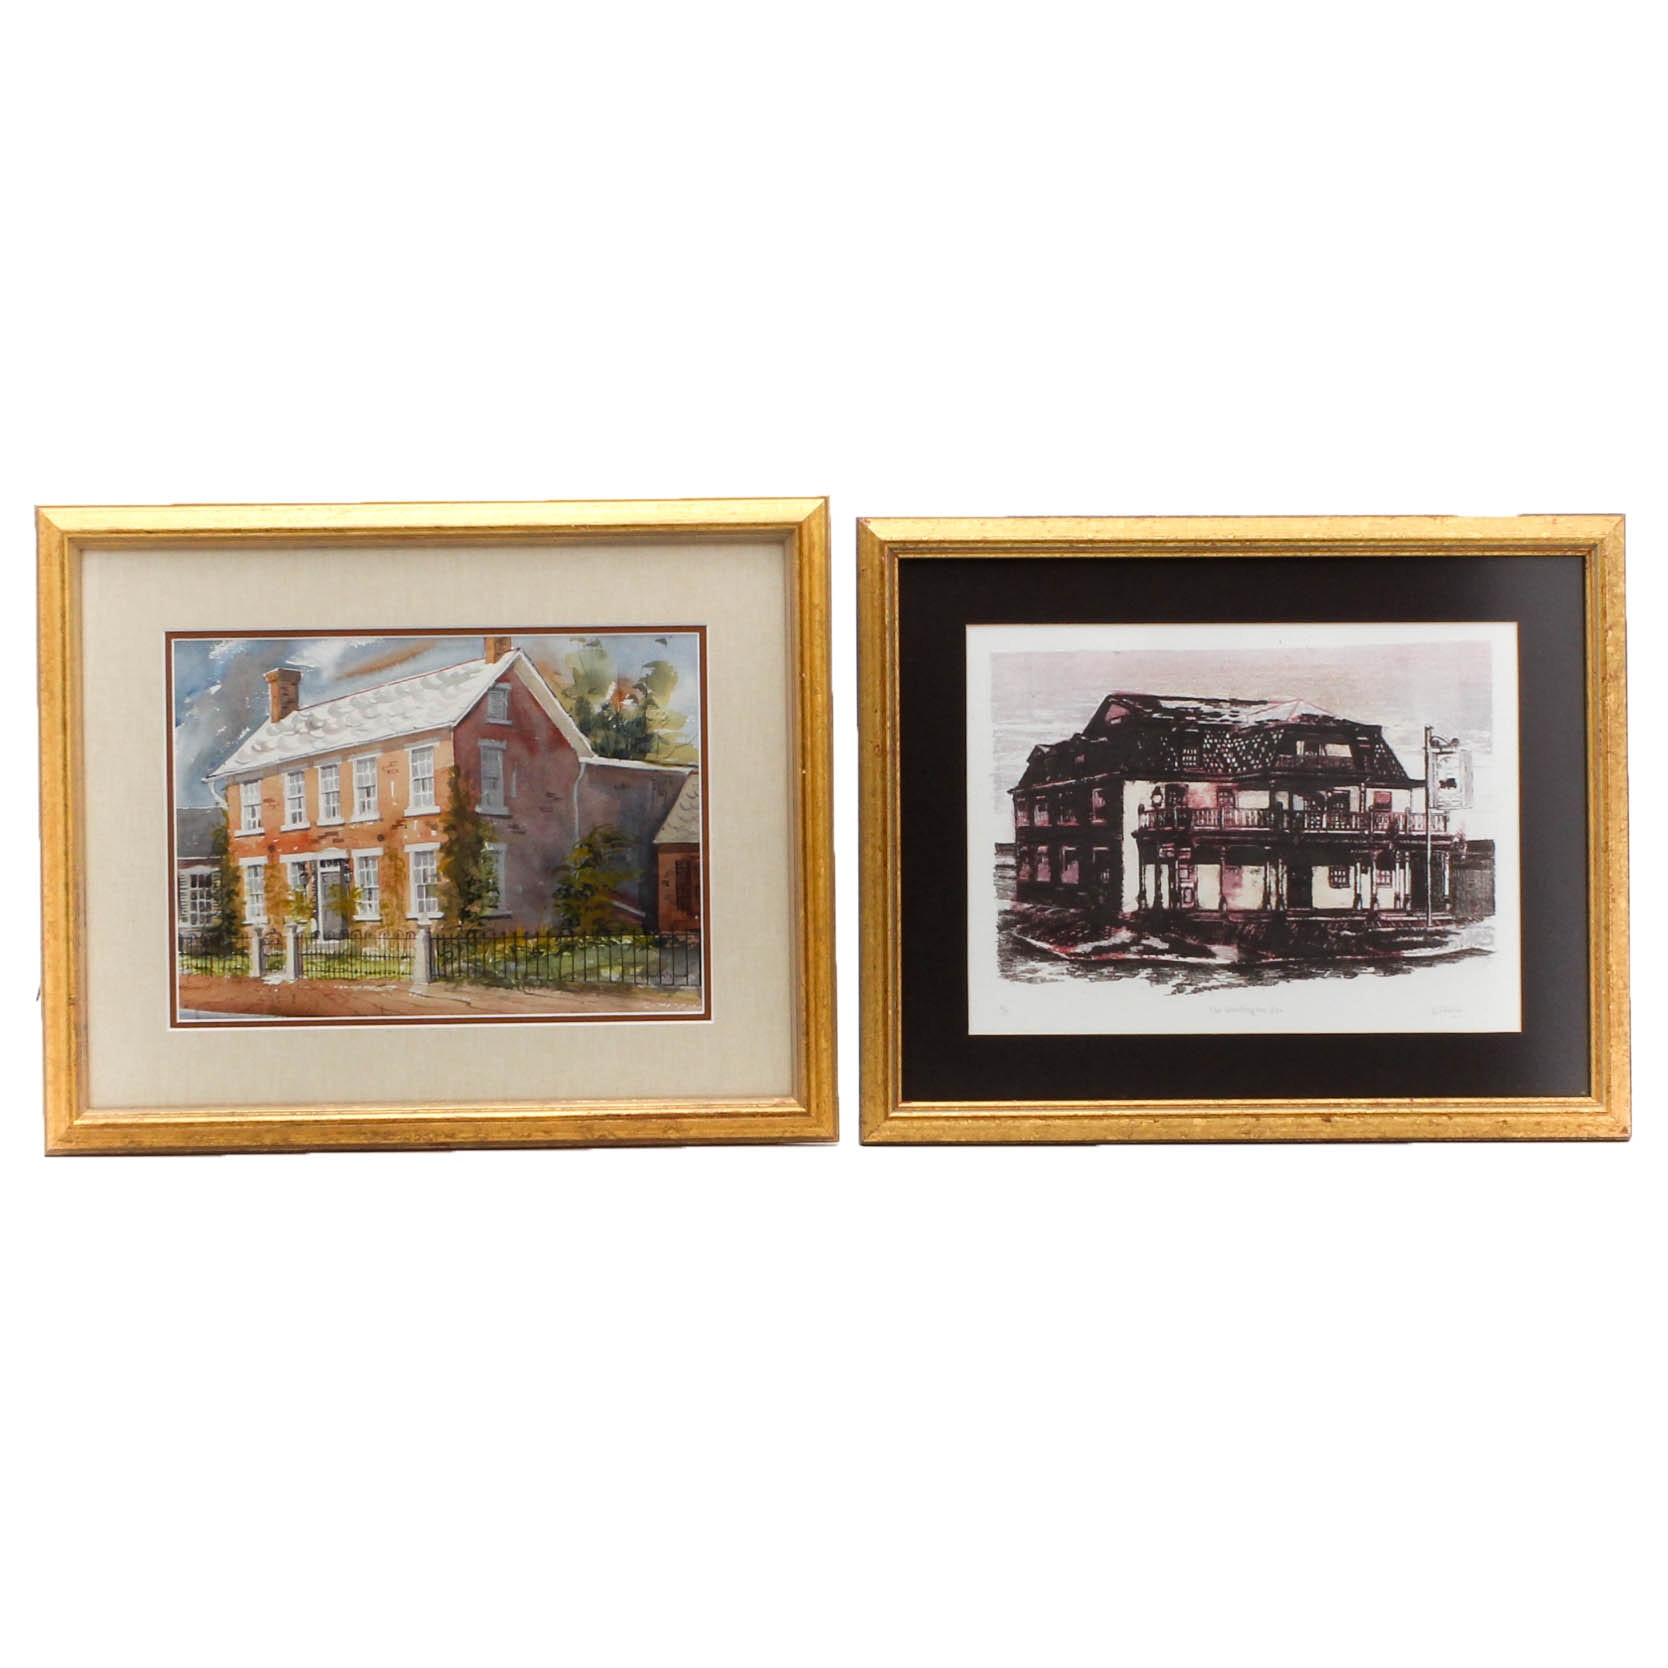 Central Ohio Vintage Architectural Images